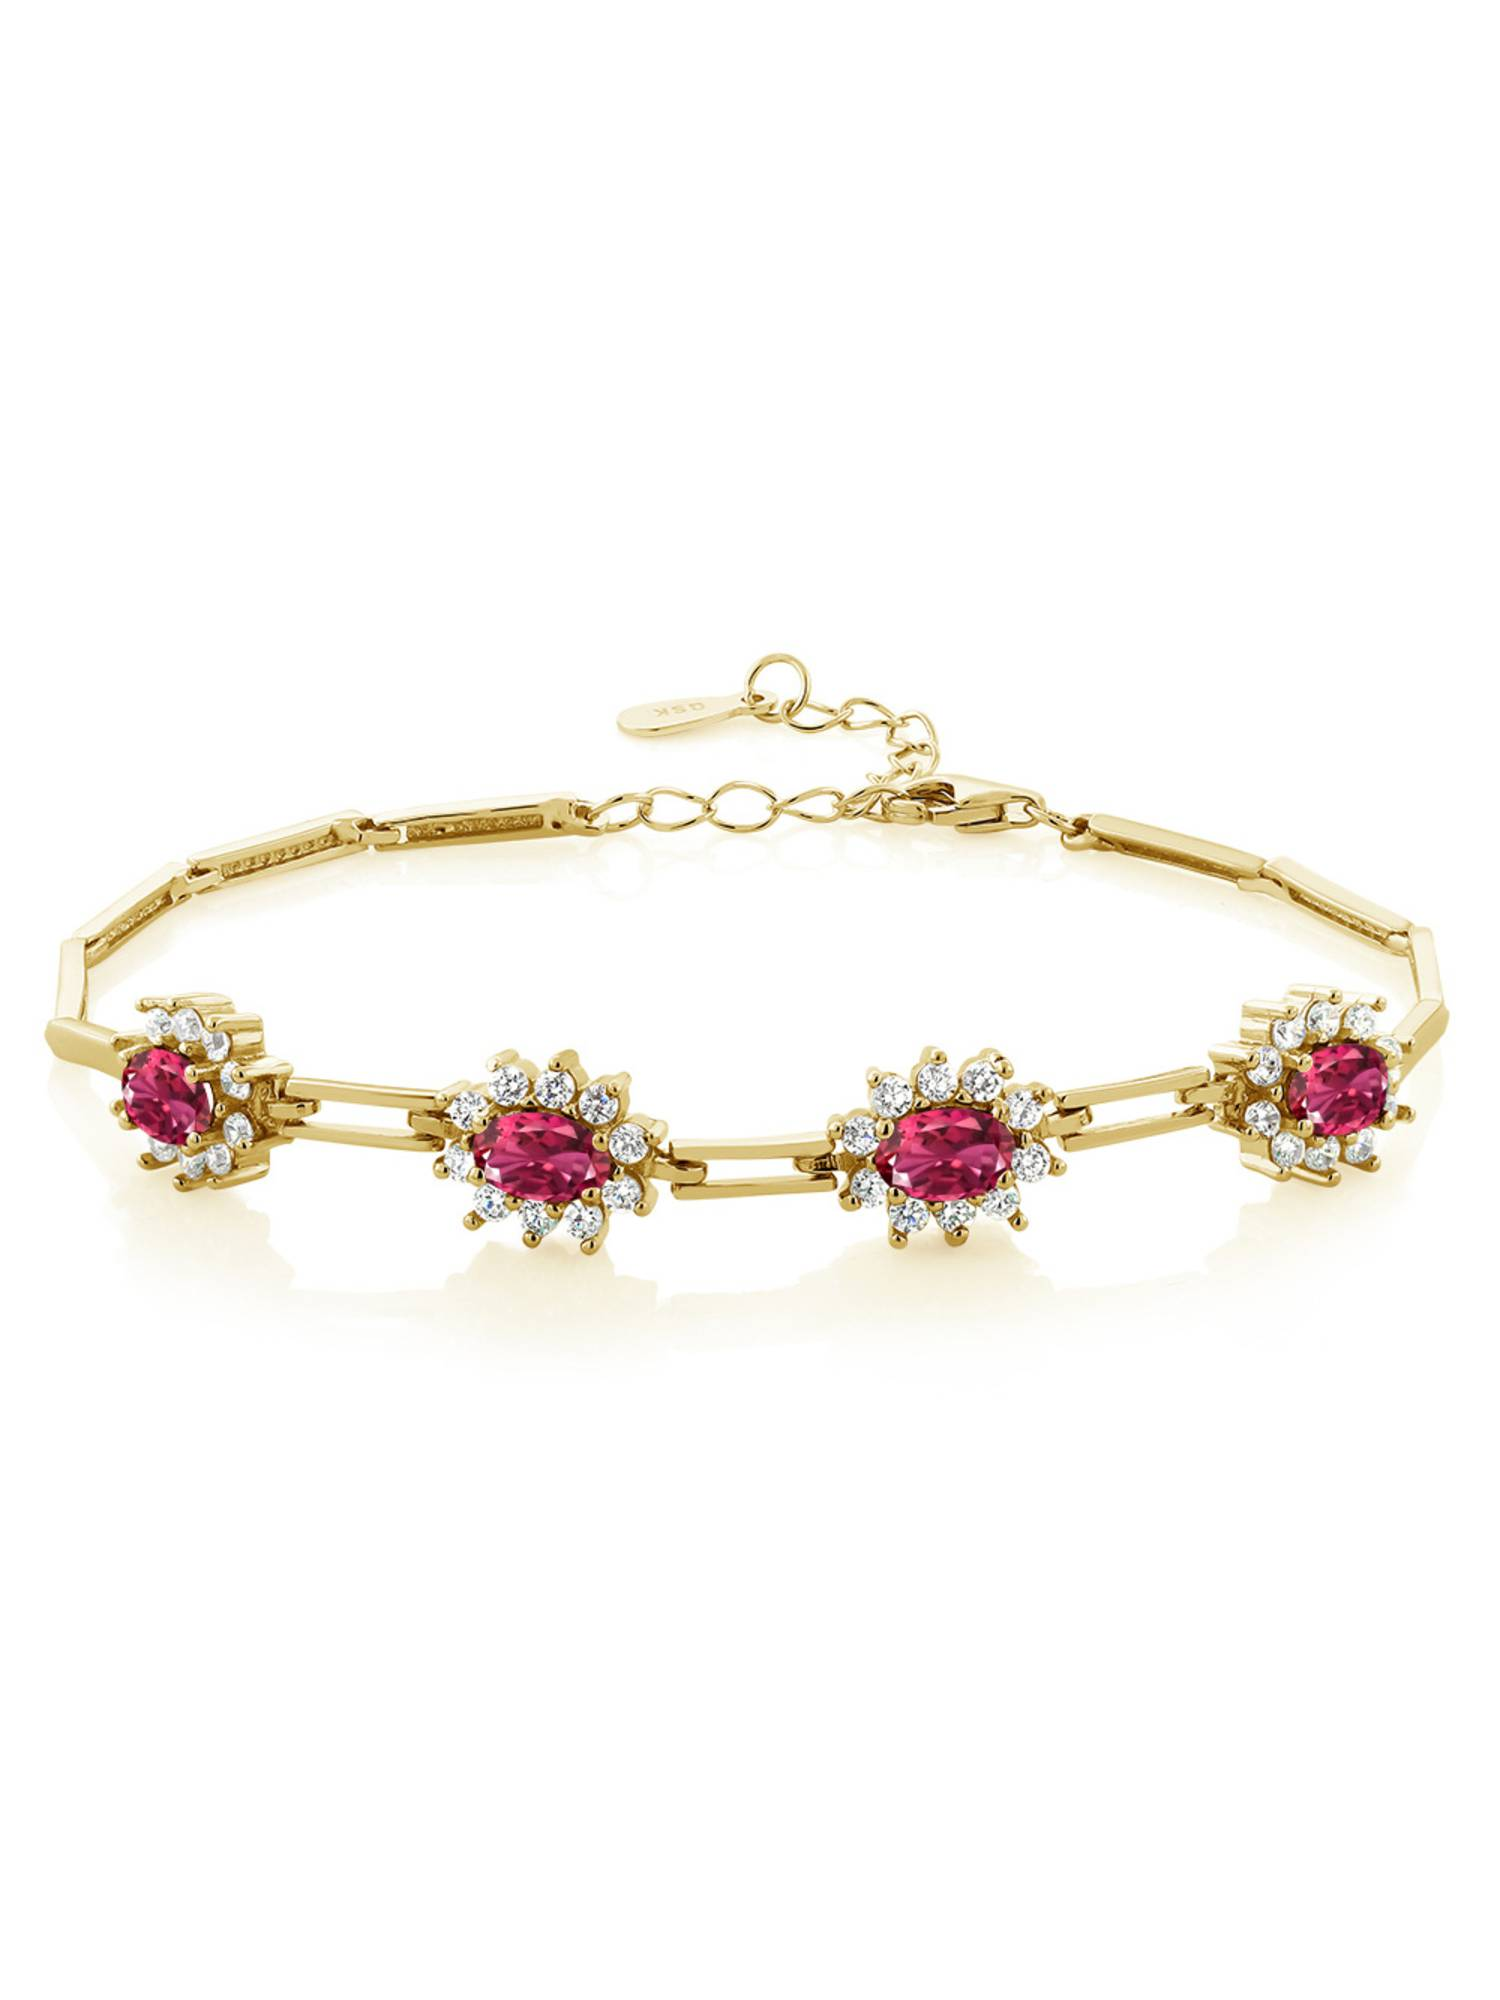 4.00 Ct Oval Pink Tourmaline 18K Yellow Gold Plated Silver Bracelet by